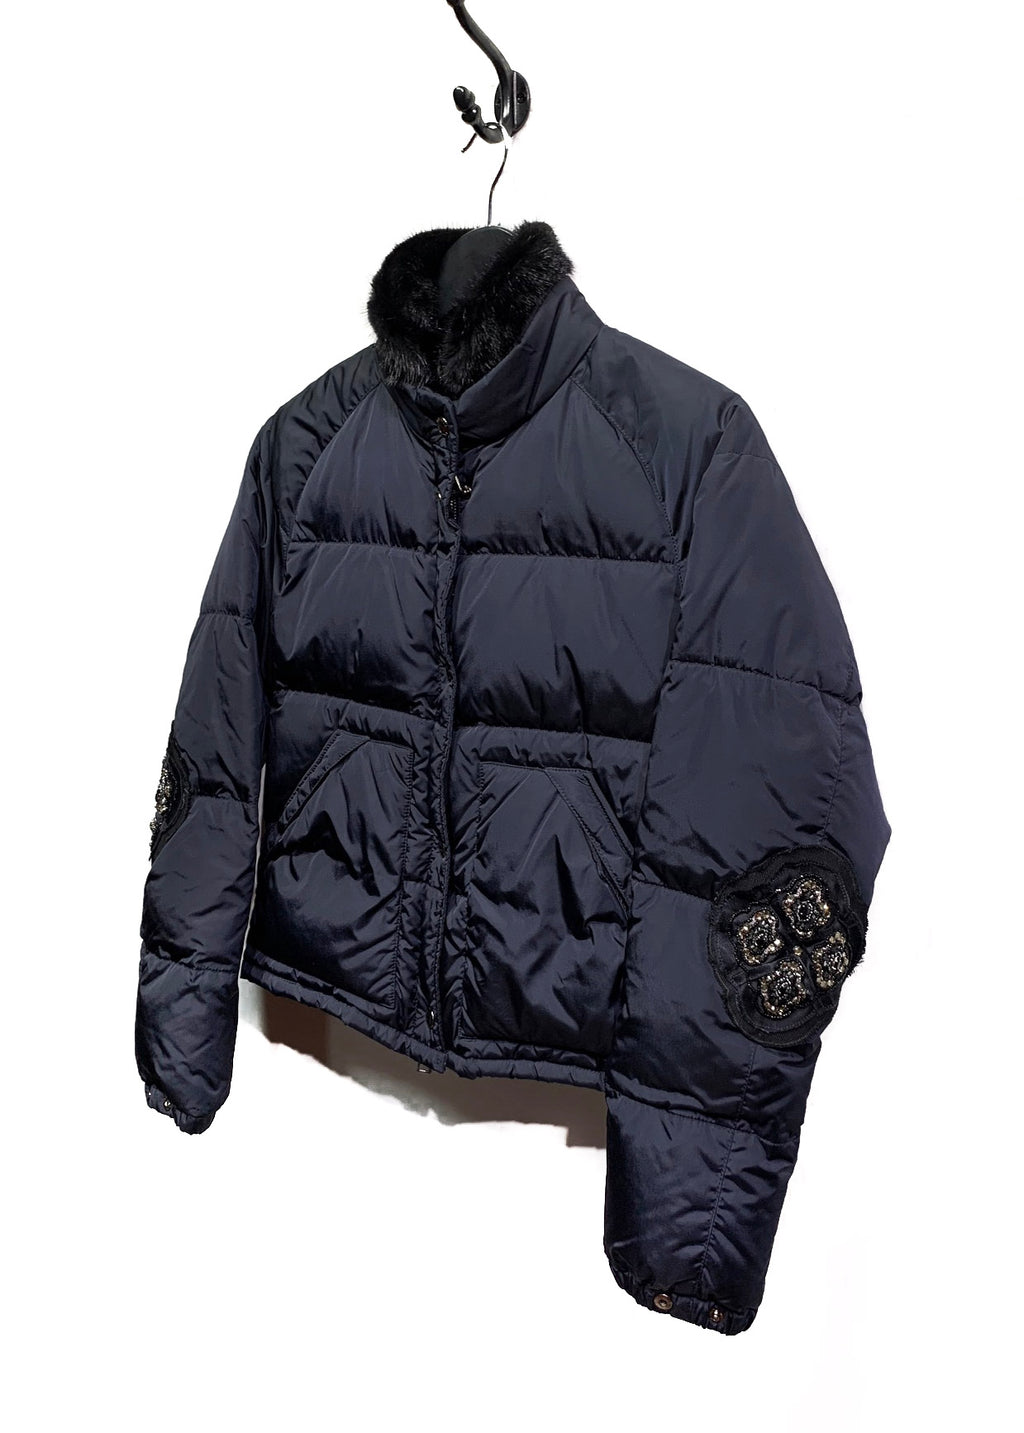 Prada Navy Embroidered Mink Collar Puffer Coat